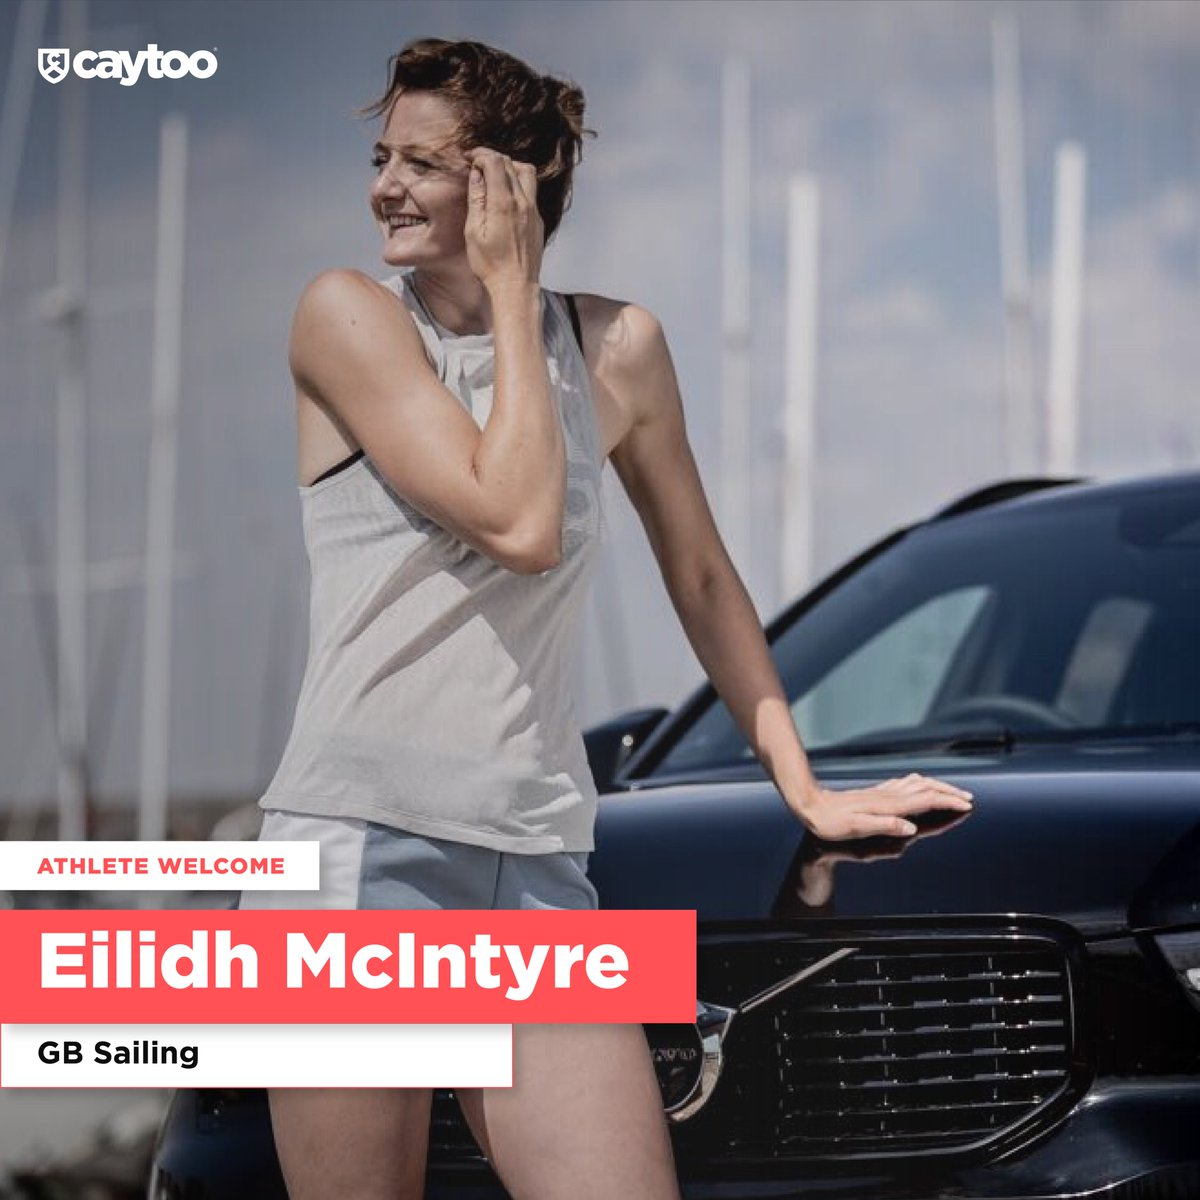 💥 Huge welcome to our latest athlete, @McintyreEilidh 💥  Eilidh joined up with @hannahmills1988 in 2017, going on to win and defend a World Series title and win Bronze at the World Championships!  Make the most of your talent with the #caytoocommunity at https://t.co/6Qz2JYMRzx https://t.co/NkfZQi2gGu